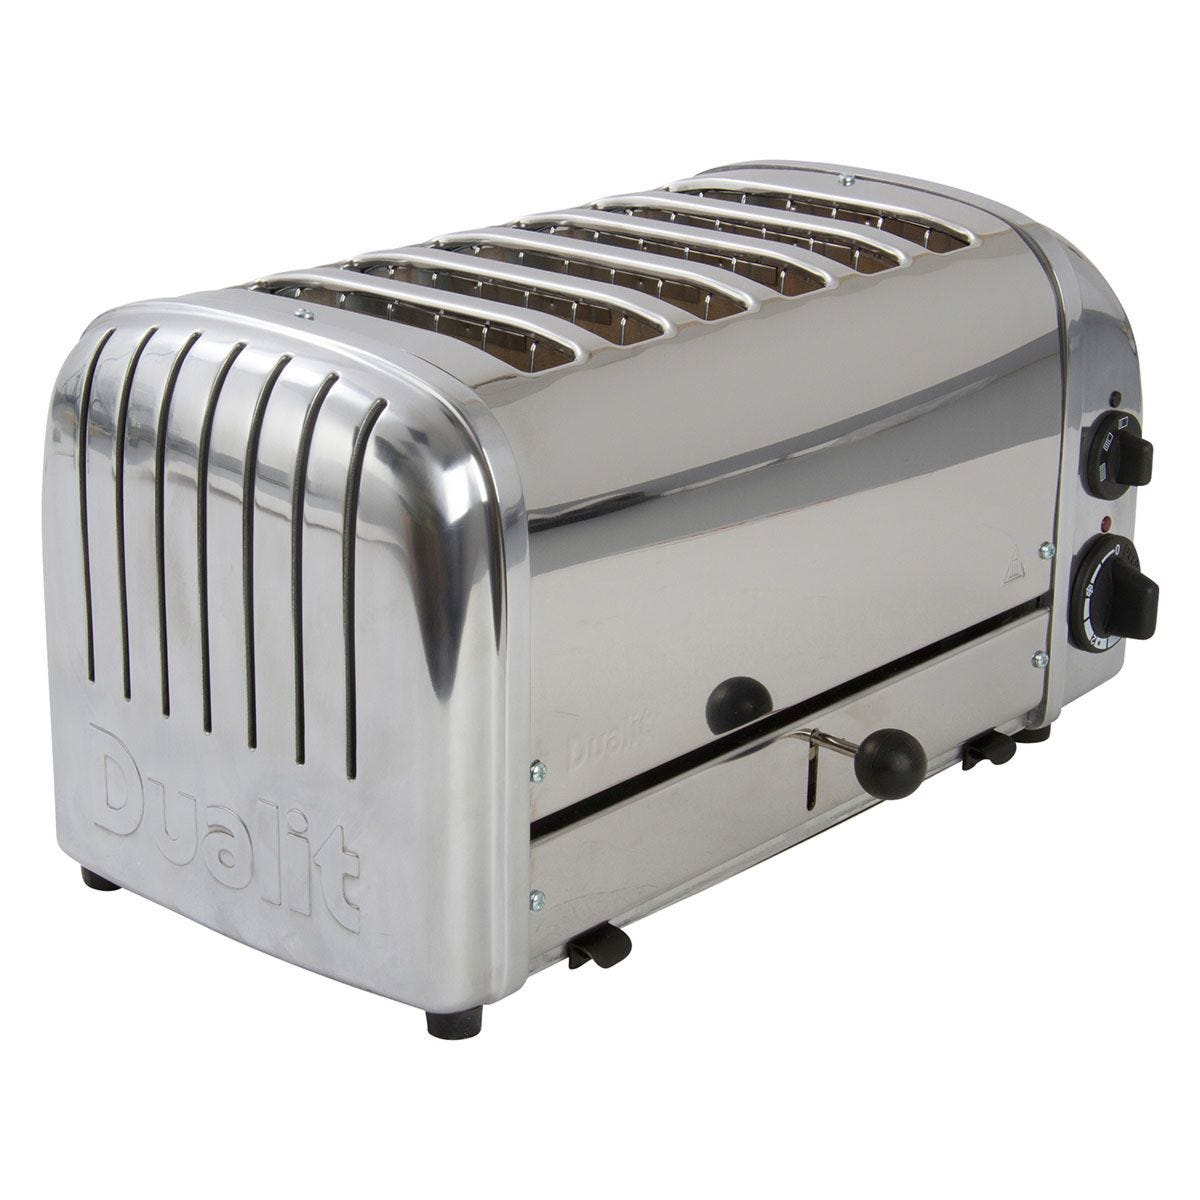 Dualit DA0144 6–Slice Classic 2200W Toaster – Polished Stainless Steel